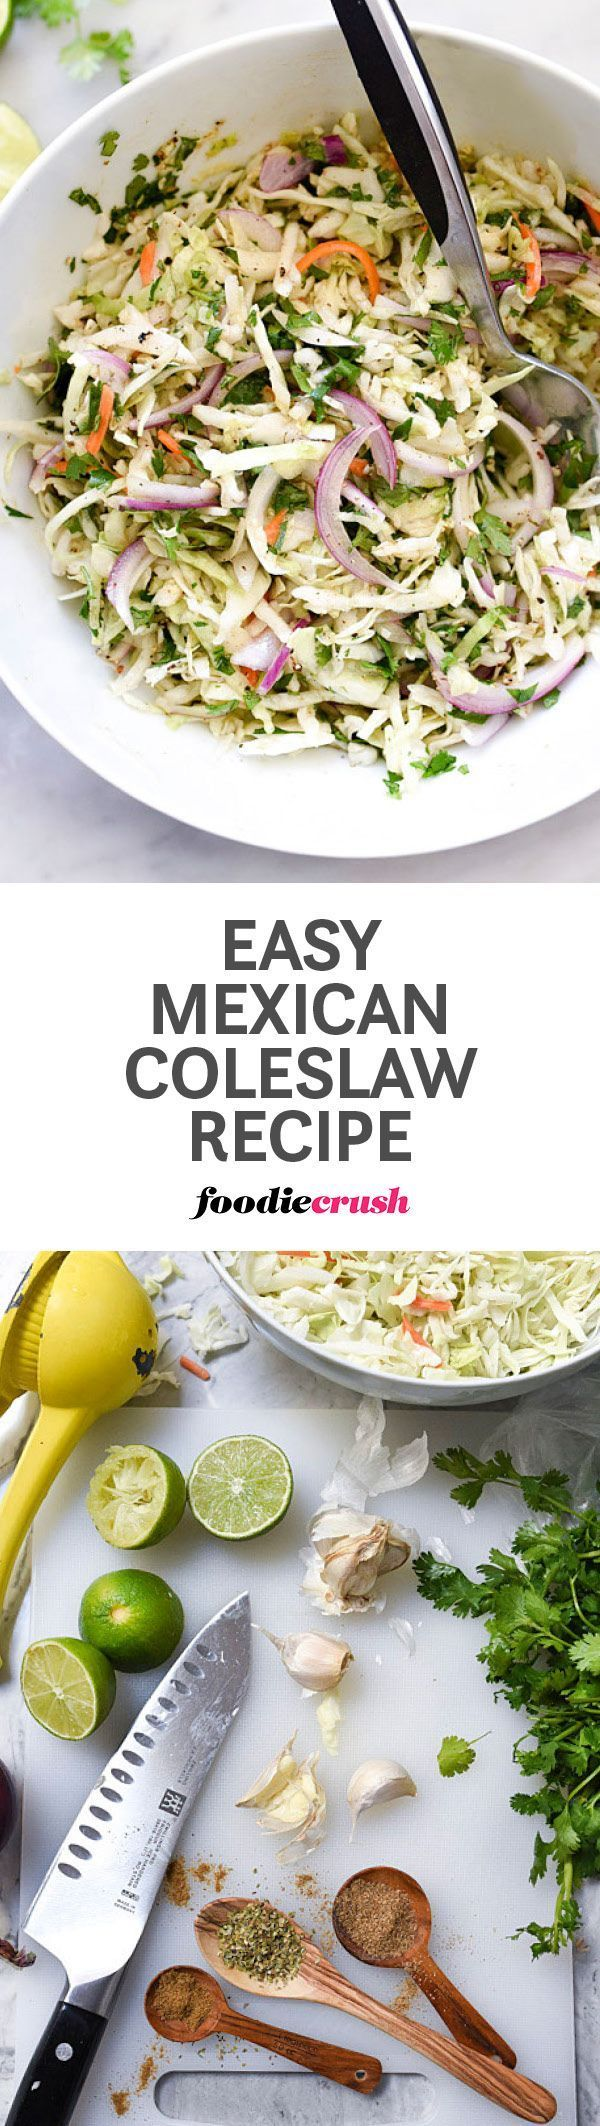 1580 best Salad Recipes images on Pinterest | Healthy meals, Healthy ...